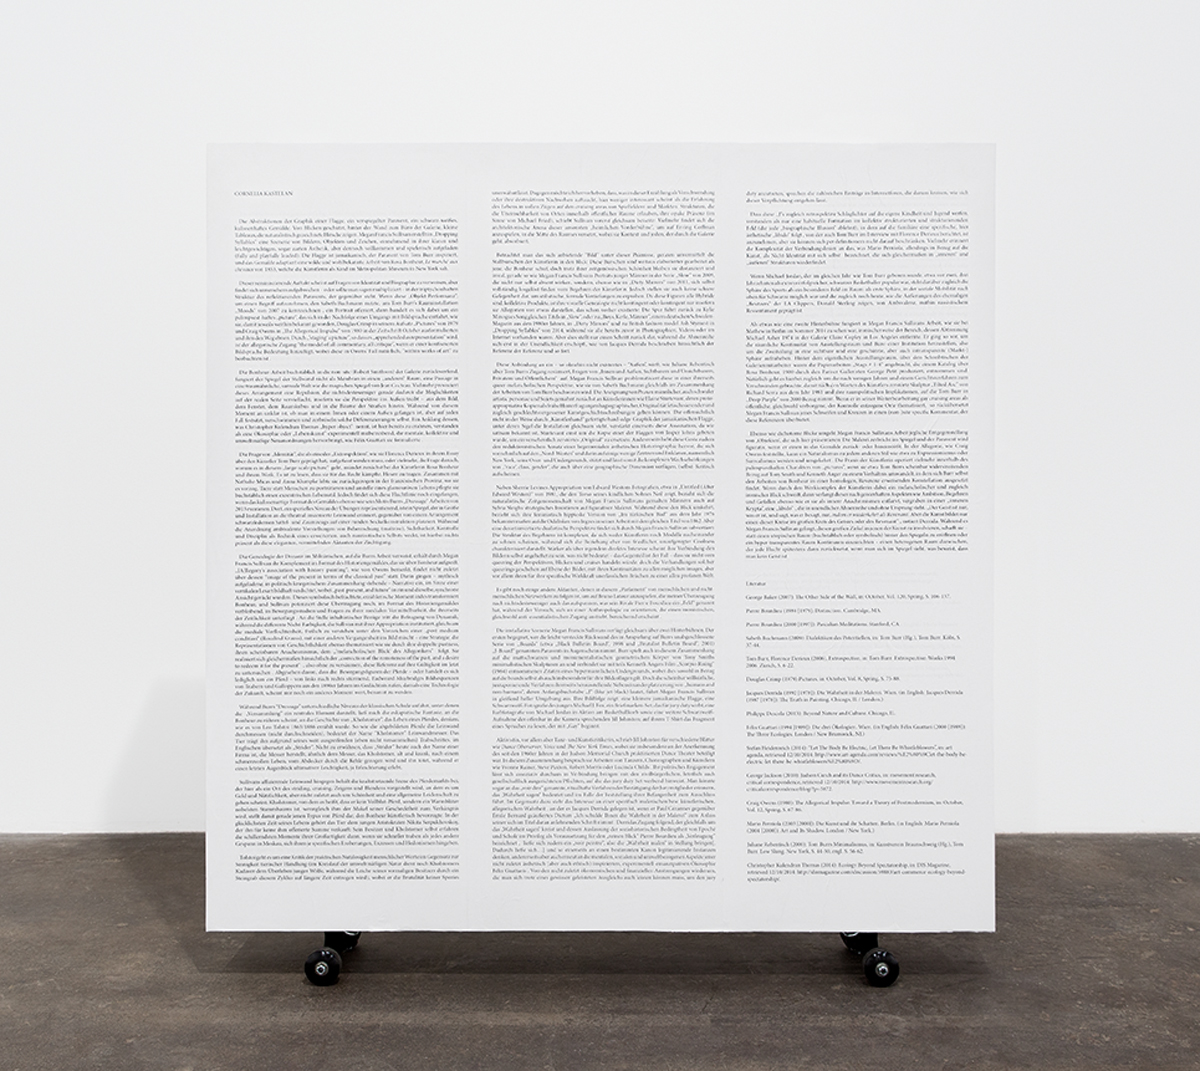 Side A: Text in lieu of an object, 2014. Plywood, pine, printed text, flashe, wheels. 51 x 48 x 6 inches.